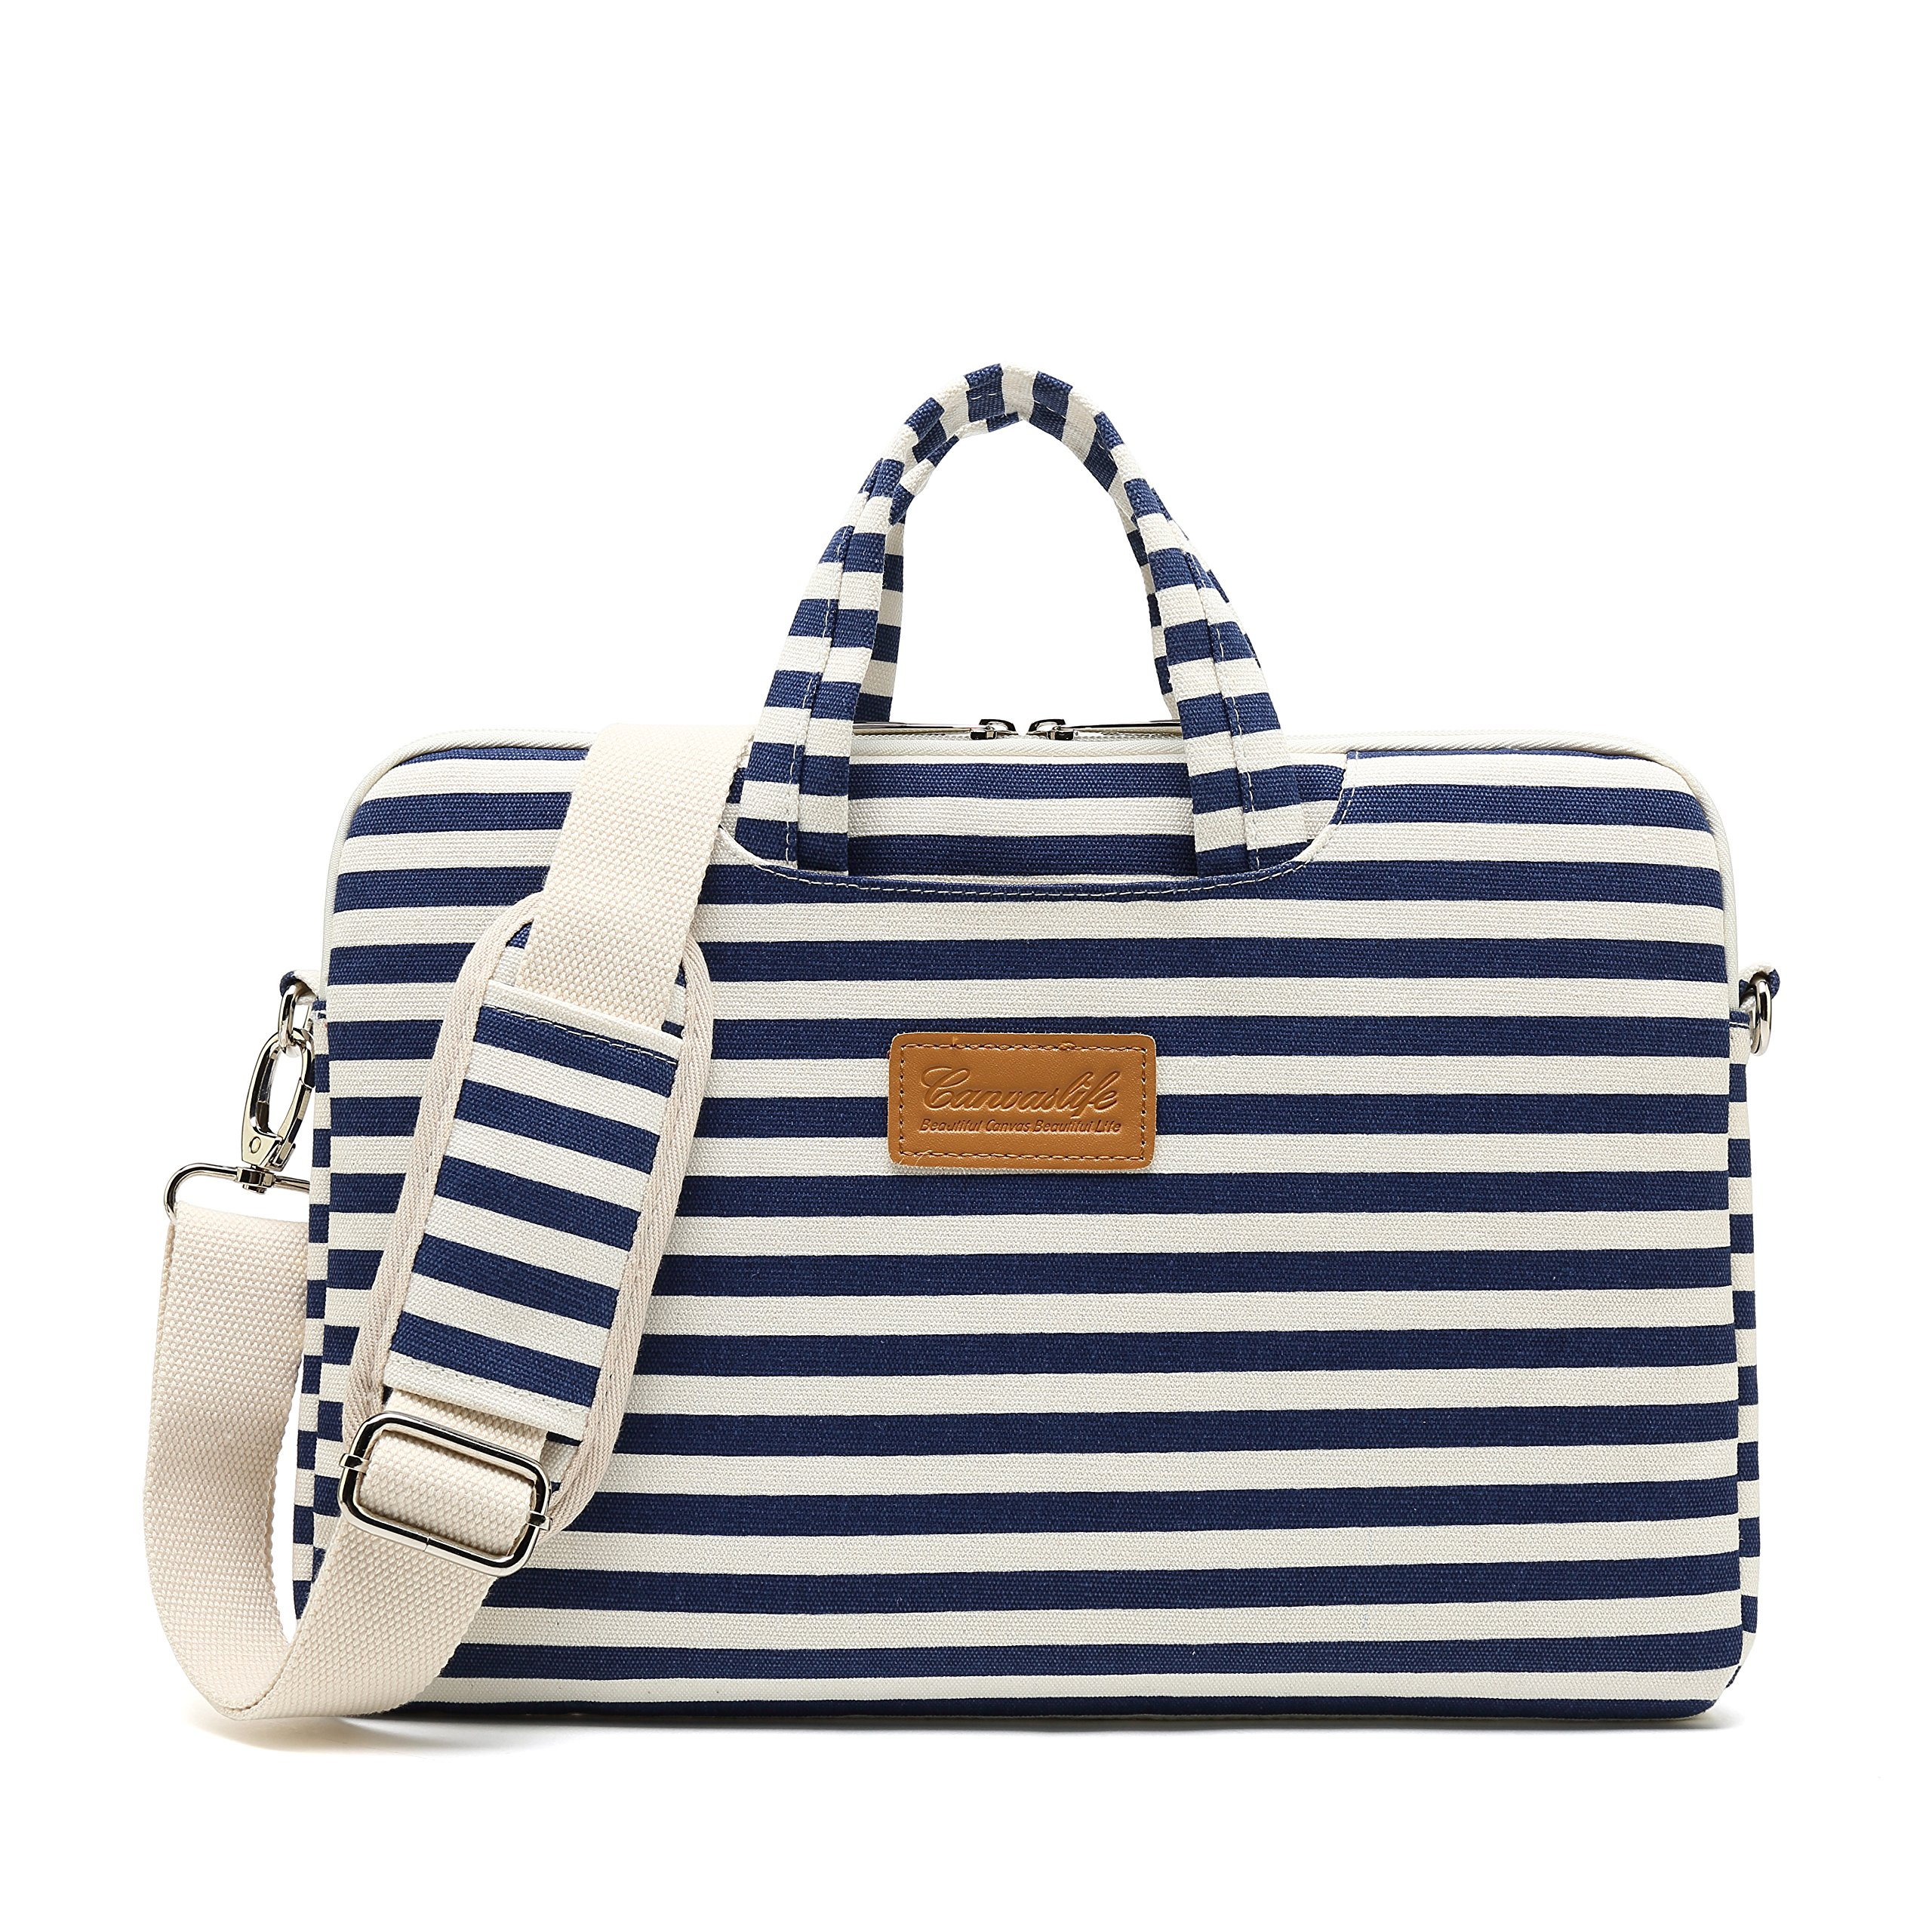 Canvaslife Breton Stripe Patten Waterproof Laptop Shoulder Messenger Bag Case Sleeve for 12 inch 13 inch Laptop and 11/12/13